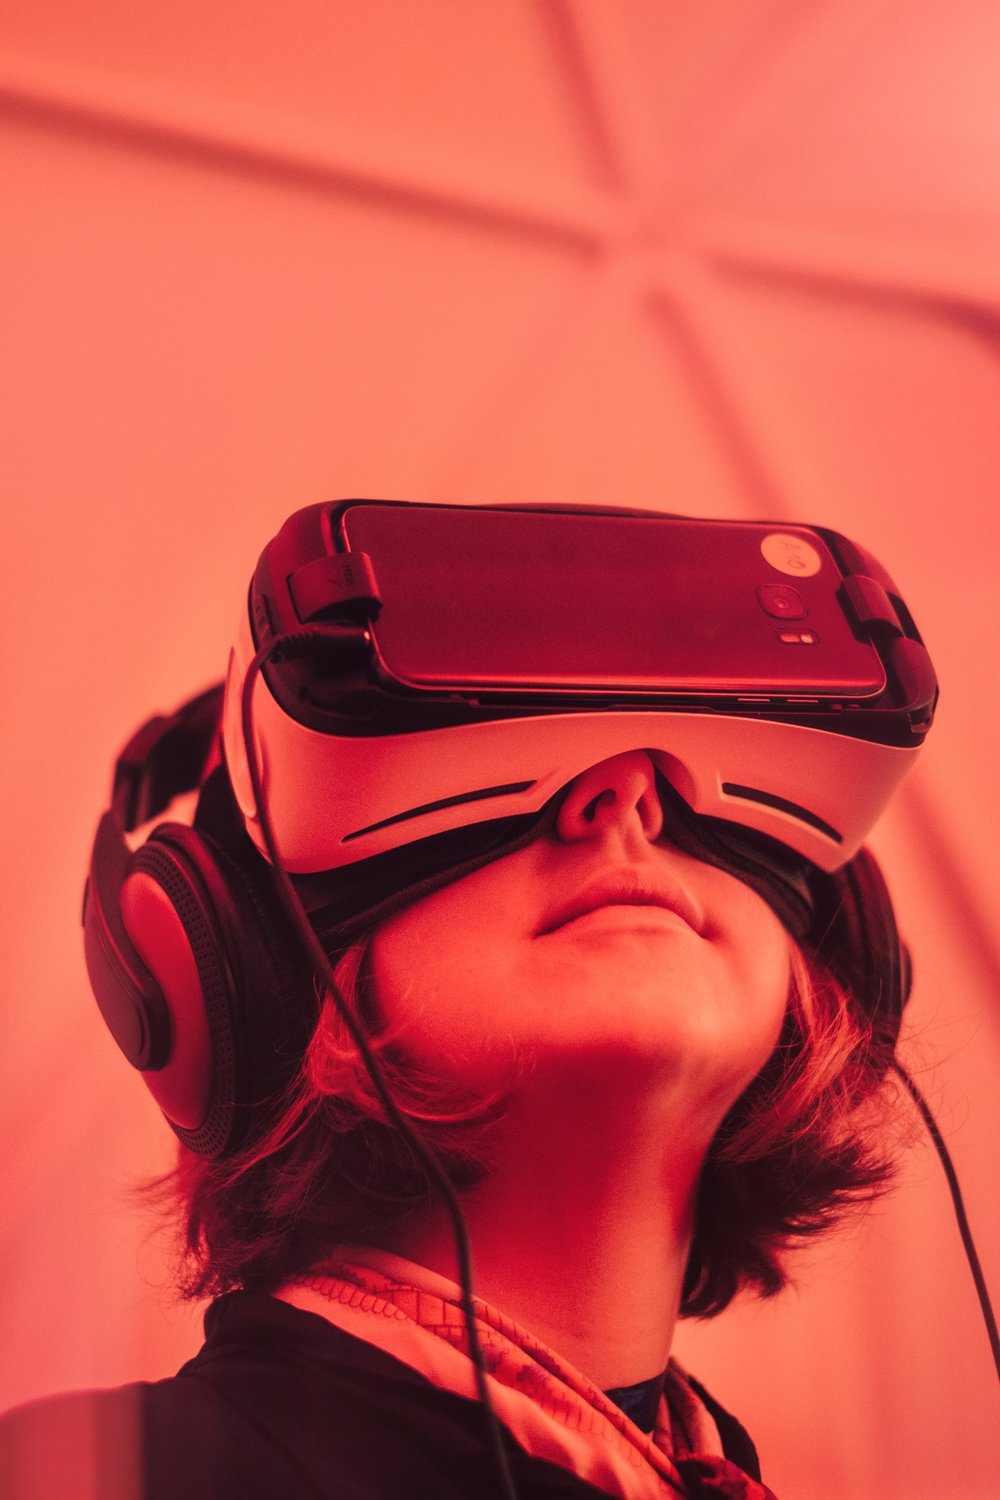 AR vs VR - AR is different from VR. In the instance of Virtual Reality, a headset or visual device is used to immerse you in a virtual/digital environment, whereas AR blends both the digital and real world.